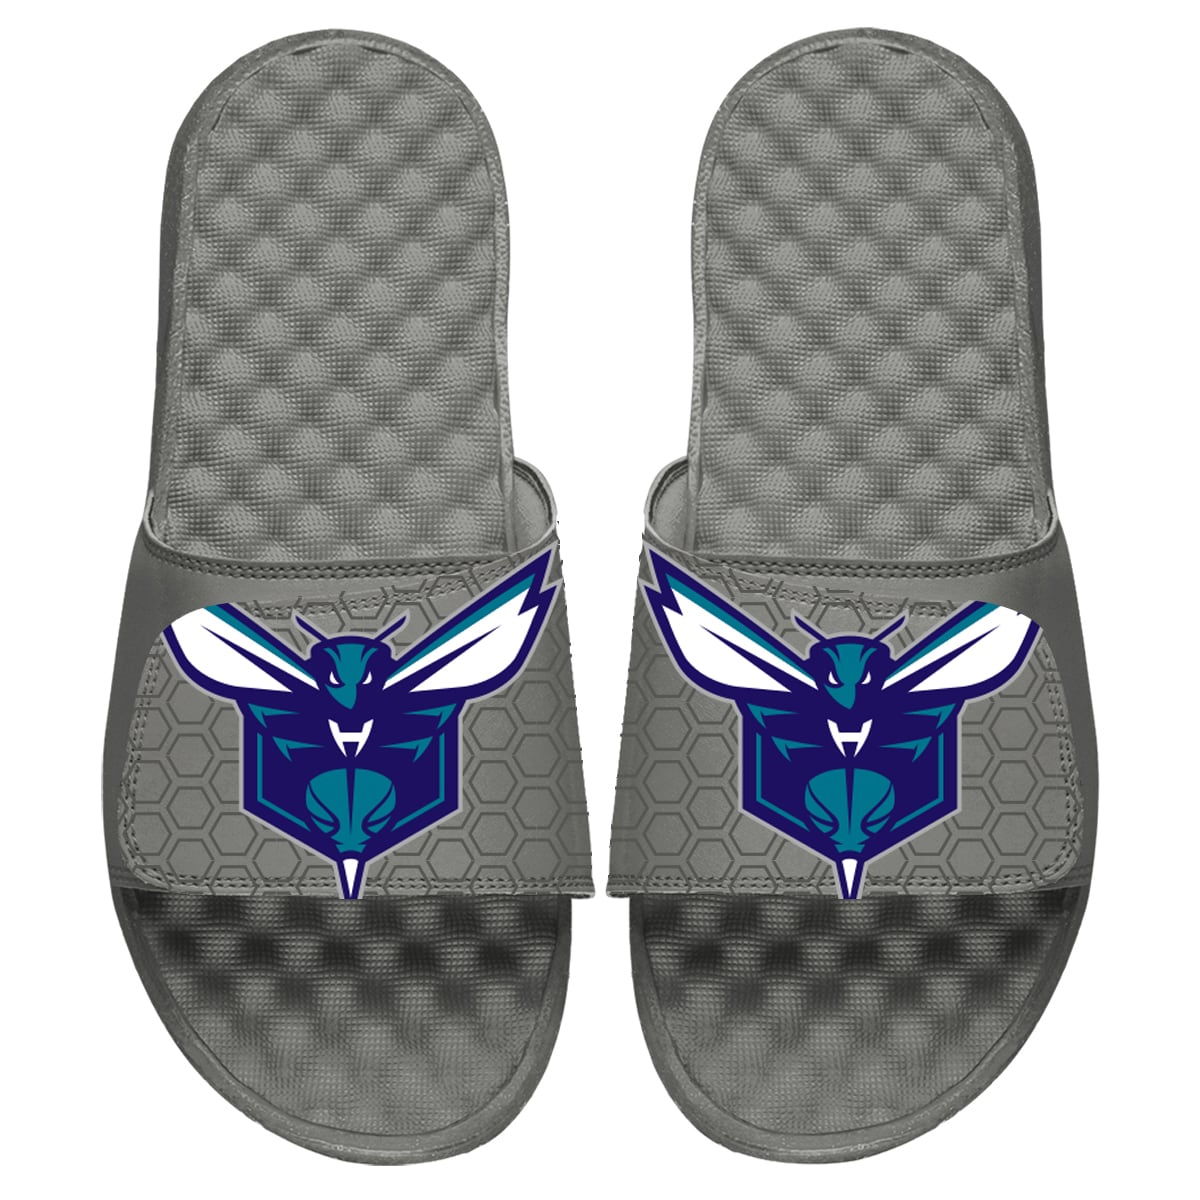 Charlotte Hornets ISlide 2019/20 City Edition Slide Sandals - Gray